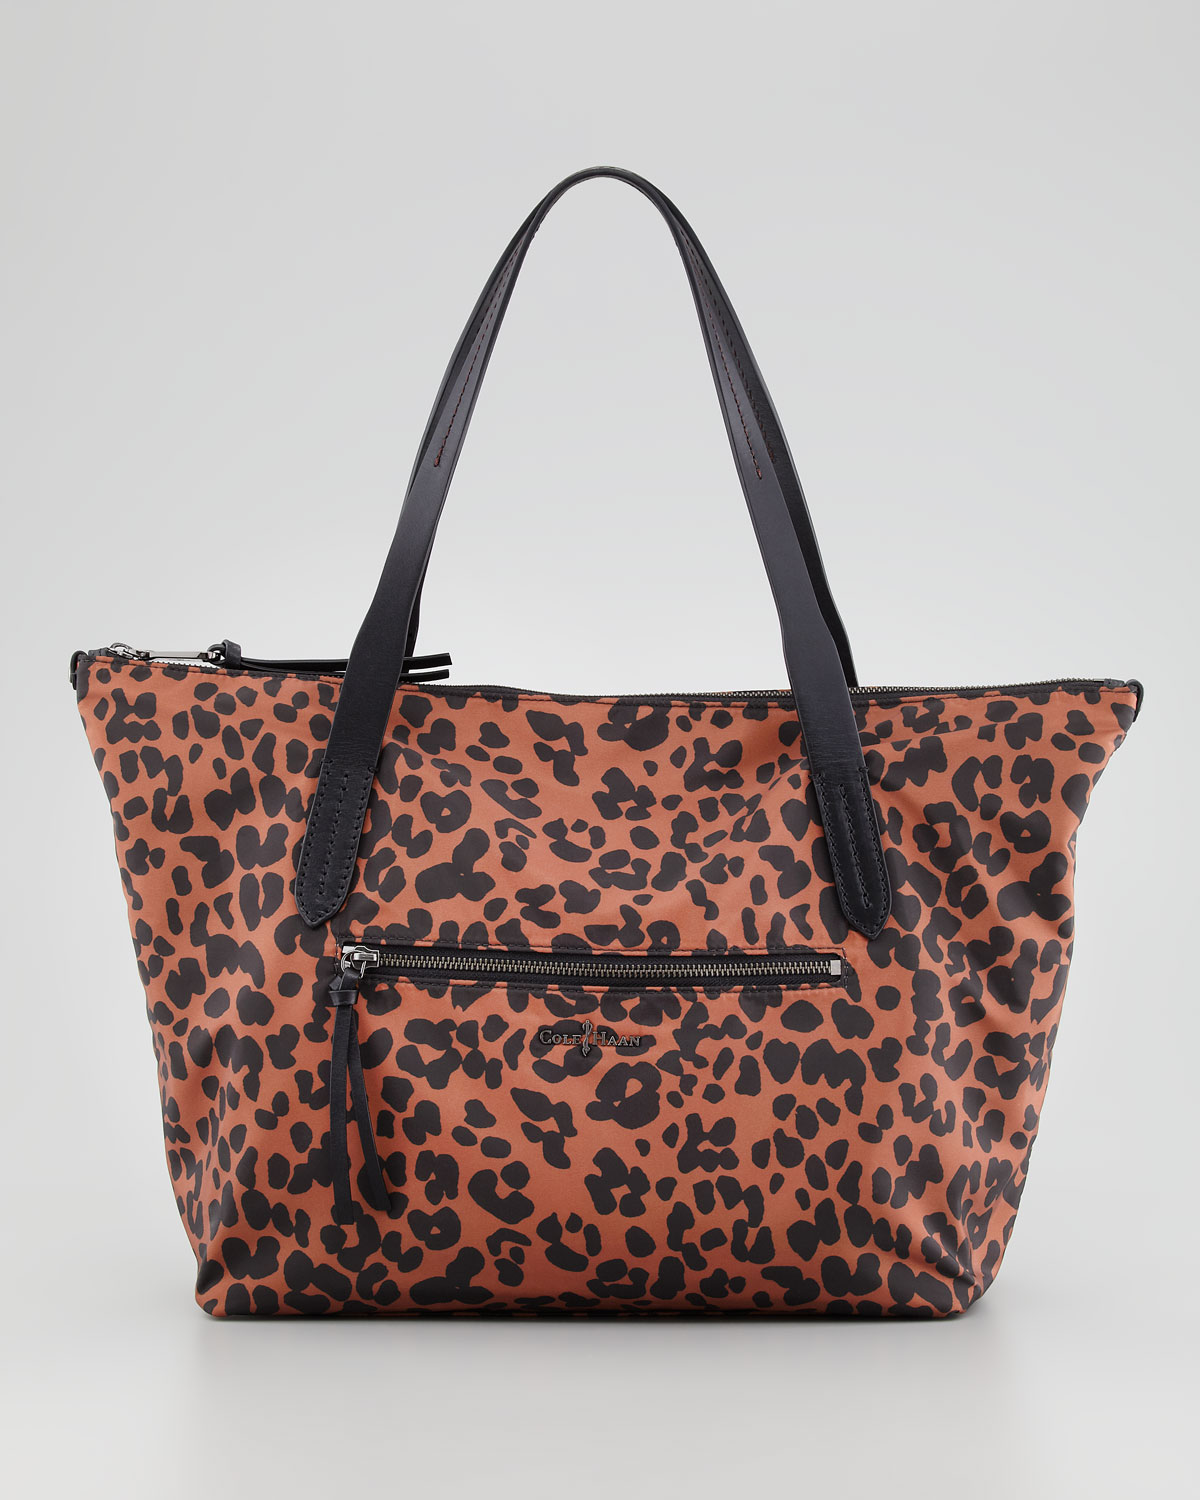 cole haan ziptop shopper tote bag leopard